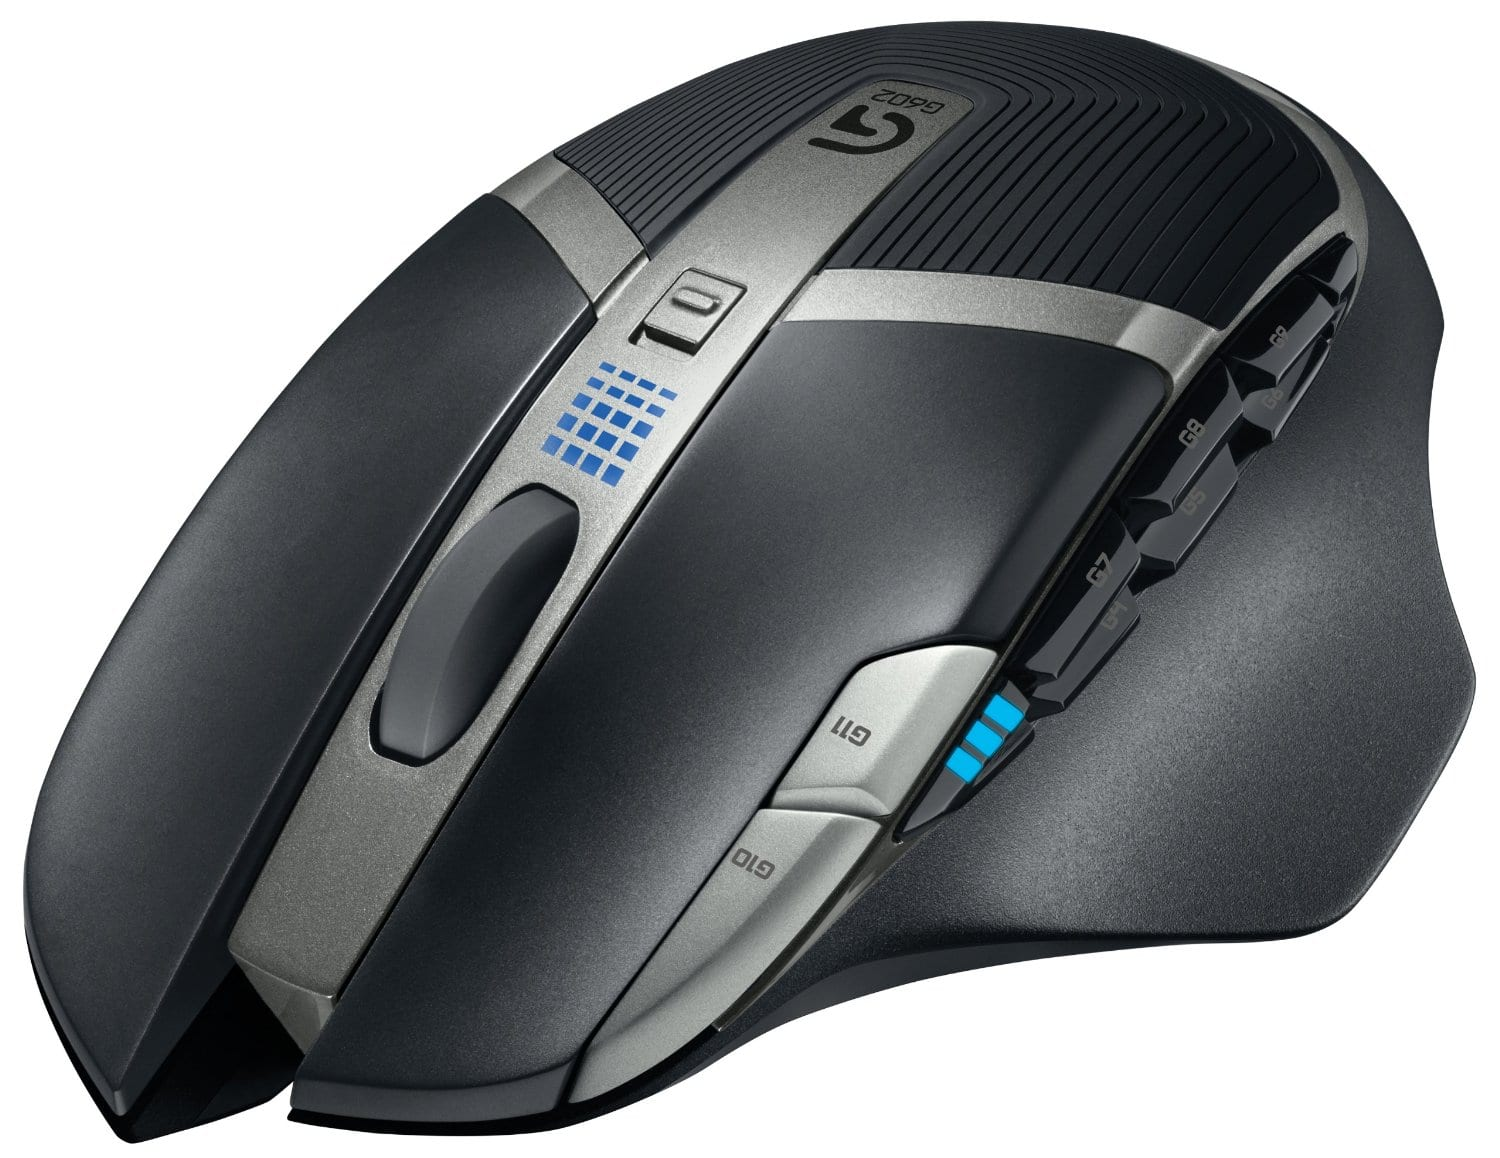 Logitech G602 Wireless Gaming Mouse $39.99 + Free Shipping / Free Store Pickup @ Best Buy